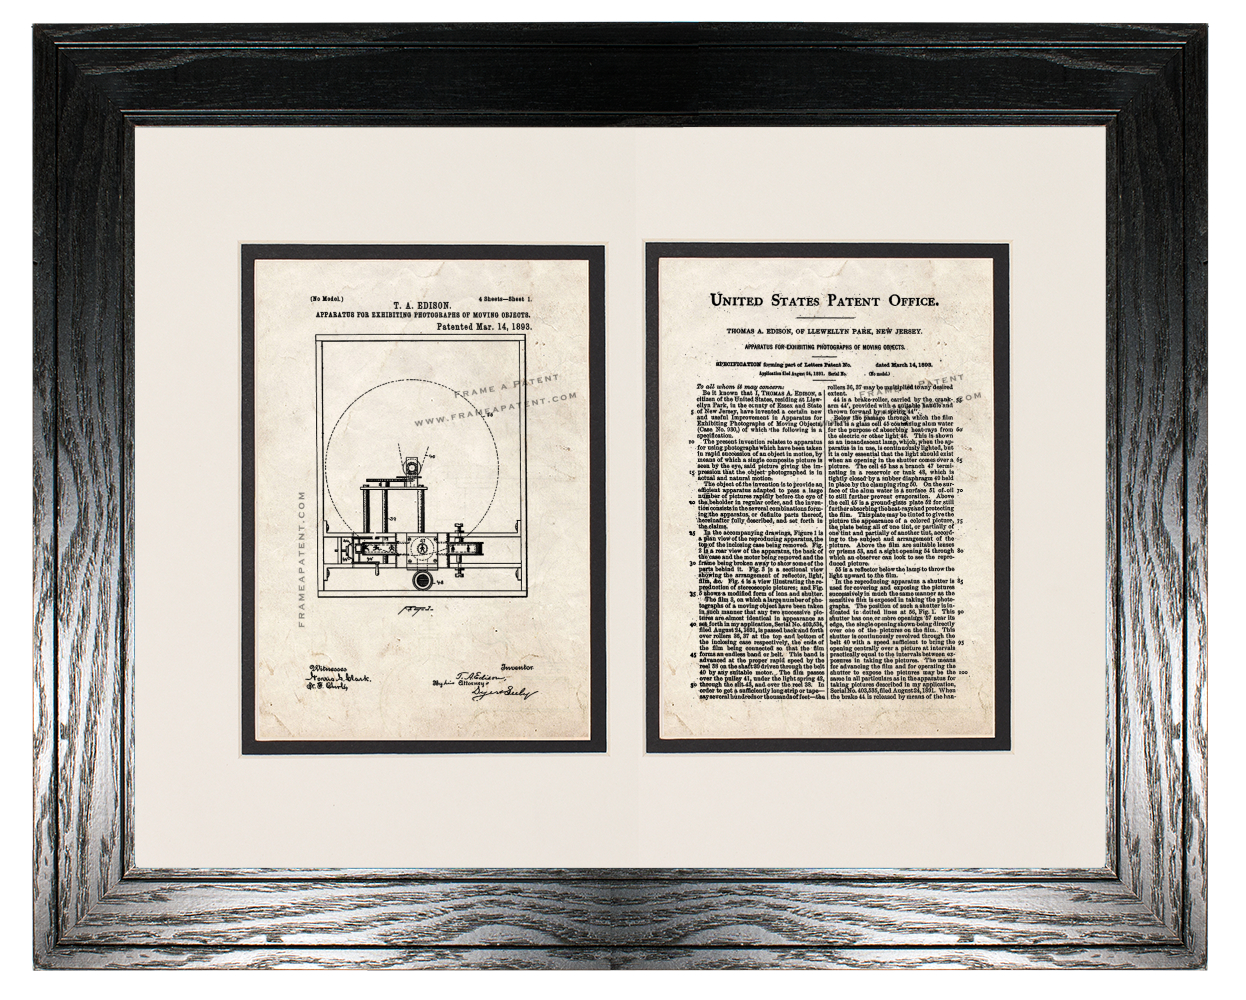 Edison Motion Picture Camera Patent with Two Pages Old Look